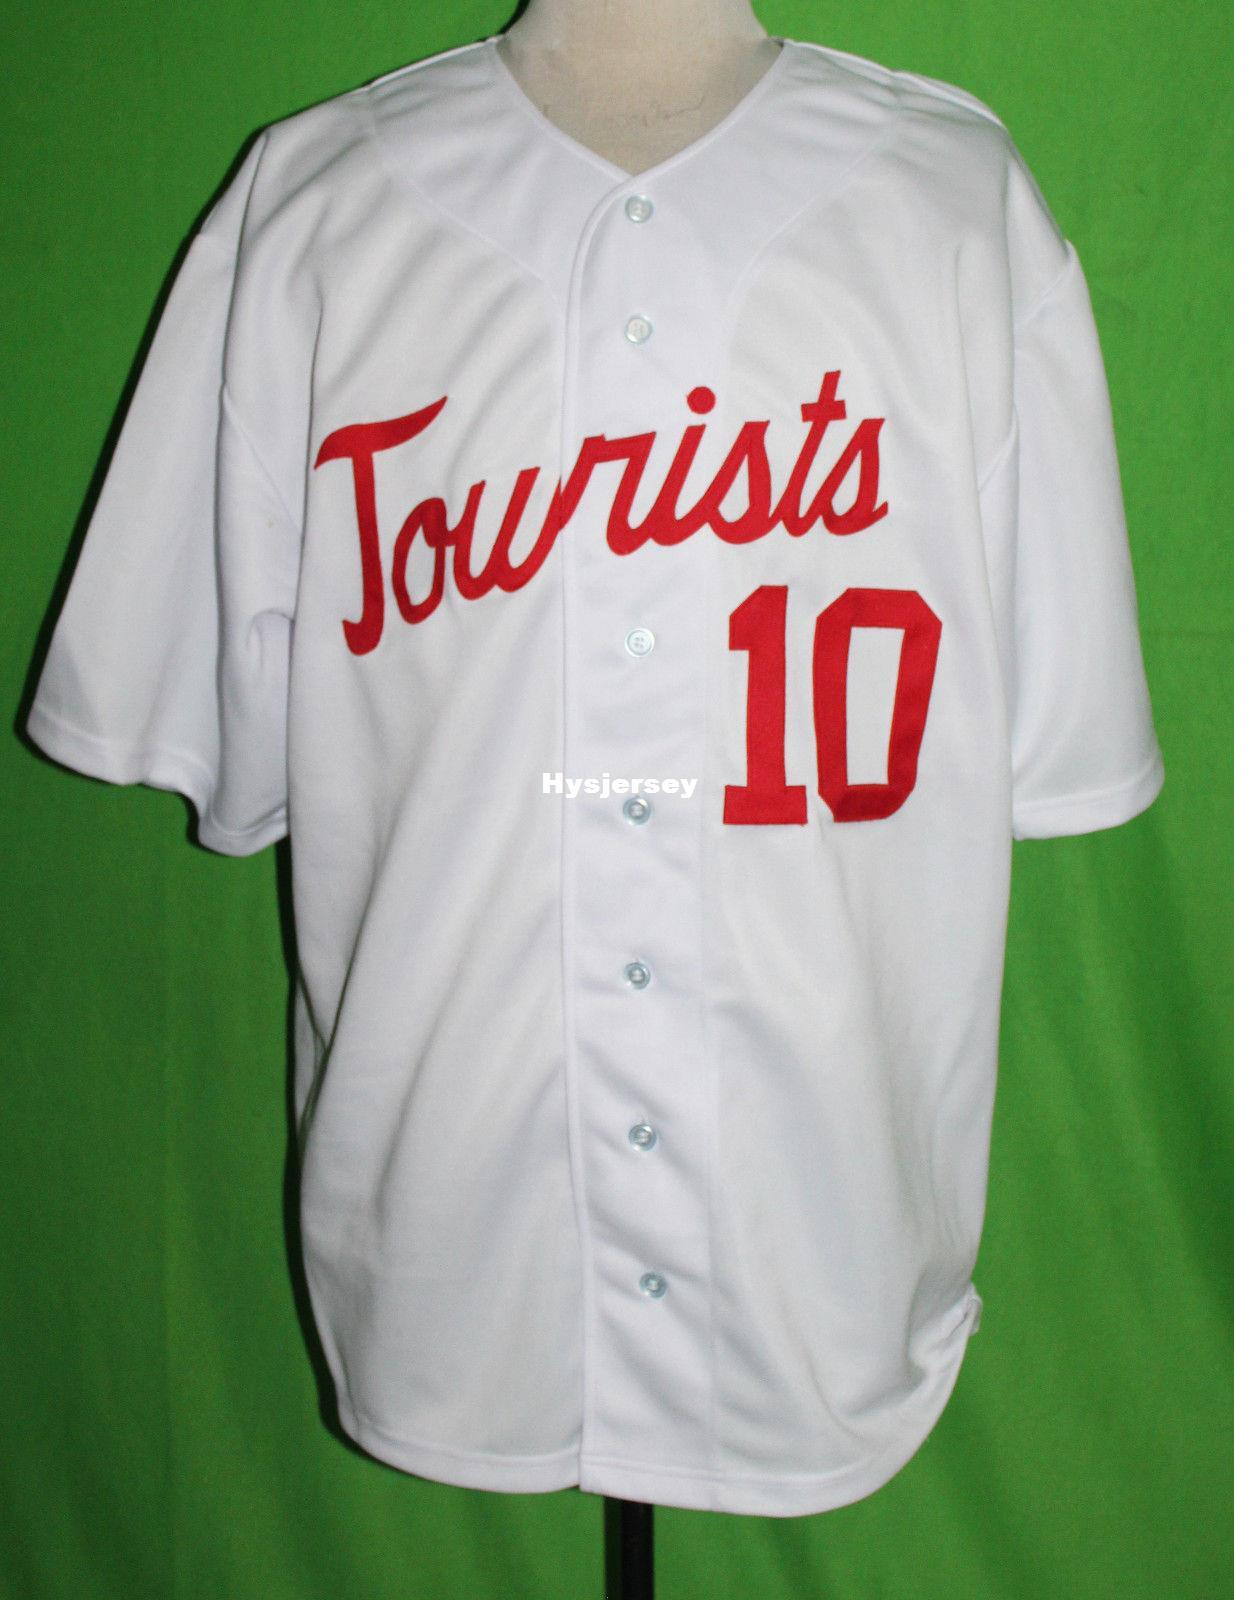 buy online d7aaa 11acb Cheap Retro ASHEVILLE TOURISTS #10 1968 Home BASEBALL JERSEY Or Custom any  number any Mens Vintage jerseys XS - 5XL